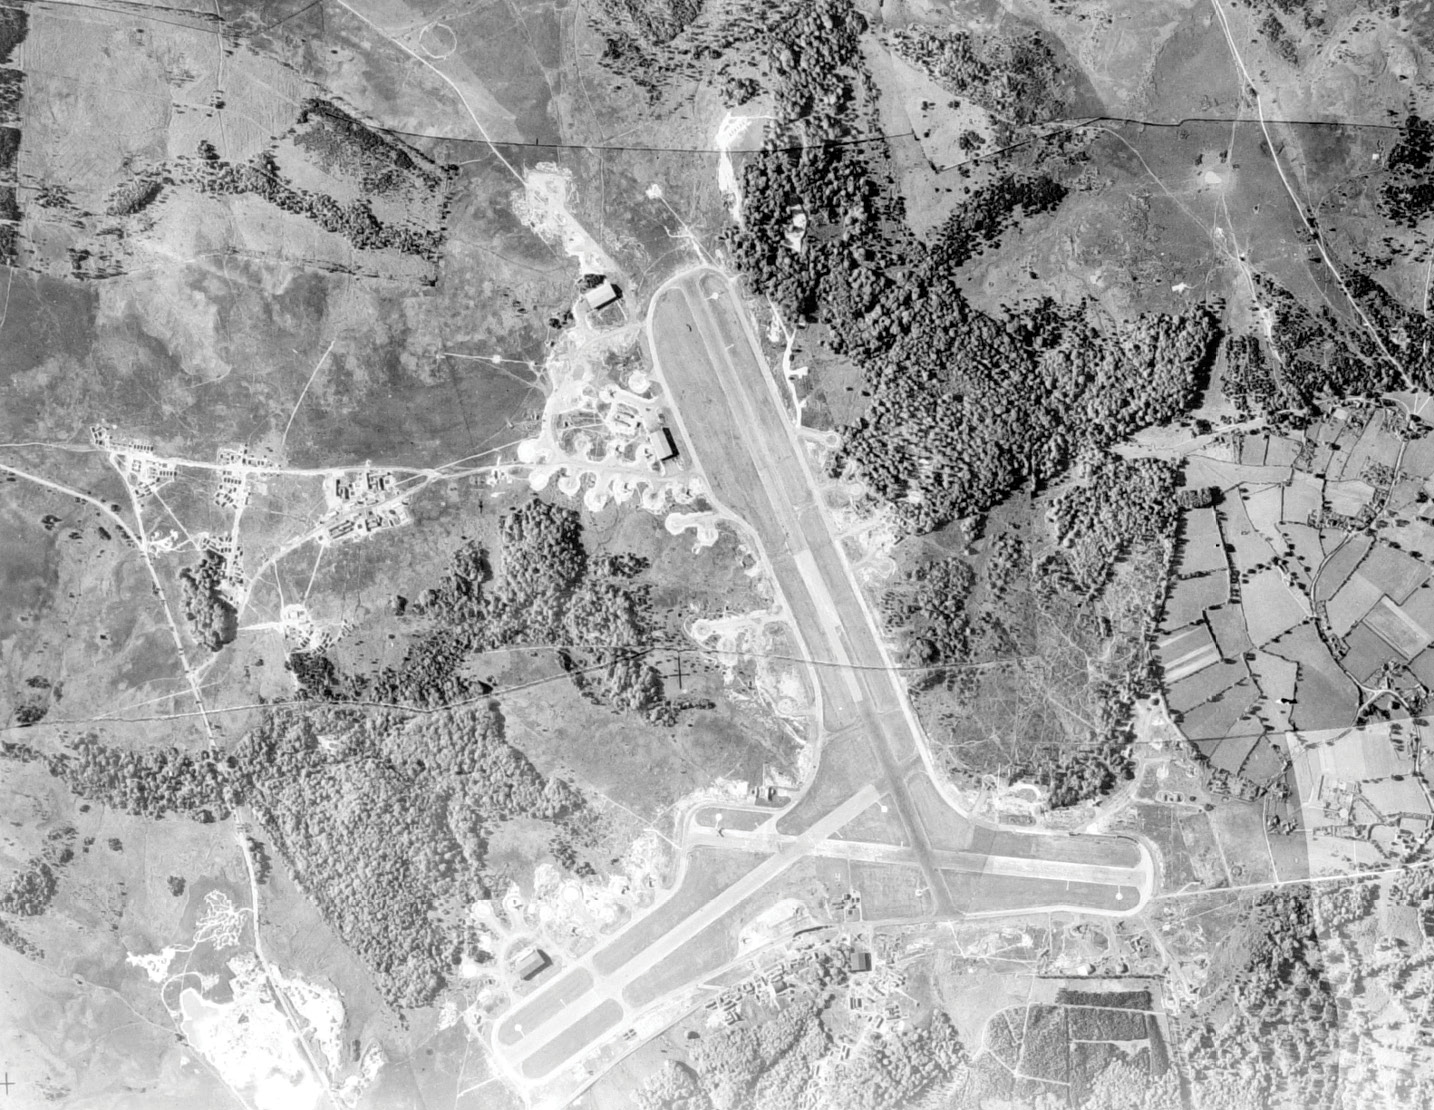 ABOVE This photograph of Stoney Cross in Hampshire shows the physical impact of a post-1943 airfield on the British landscape. Viewing these sites in their wider context, and as archaeological features as well as echoes of social and military history, greatly helps our understanding of them.